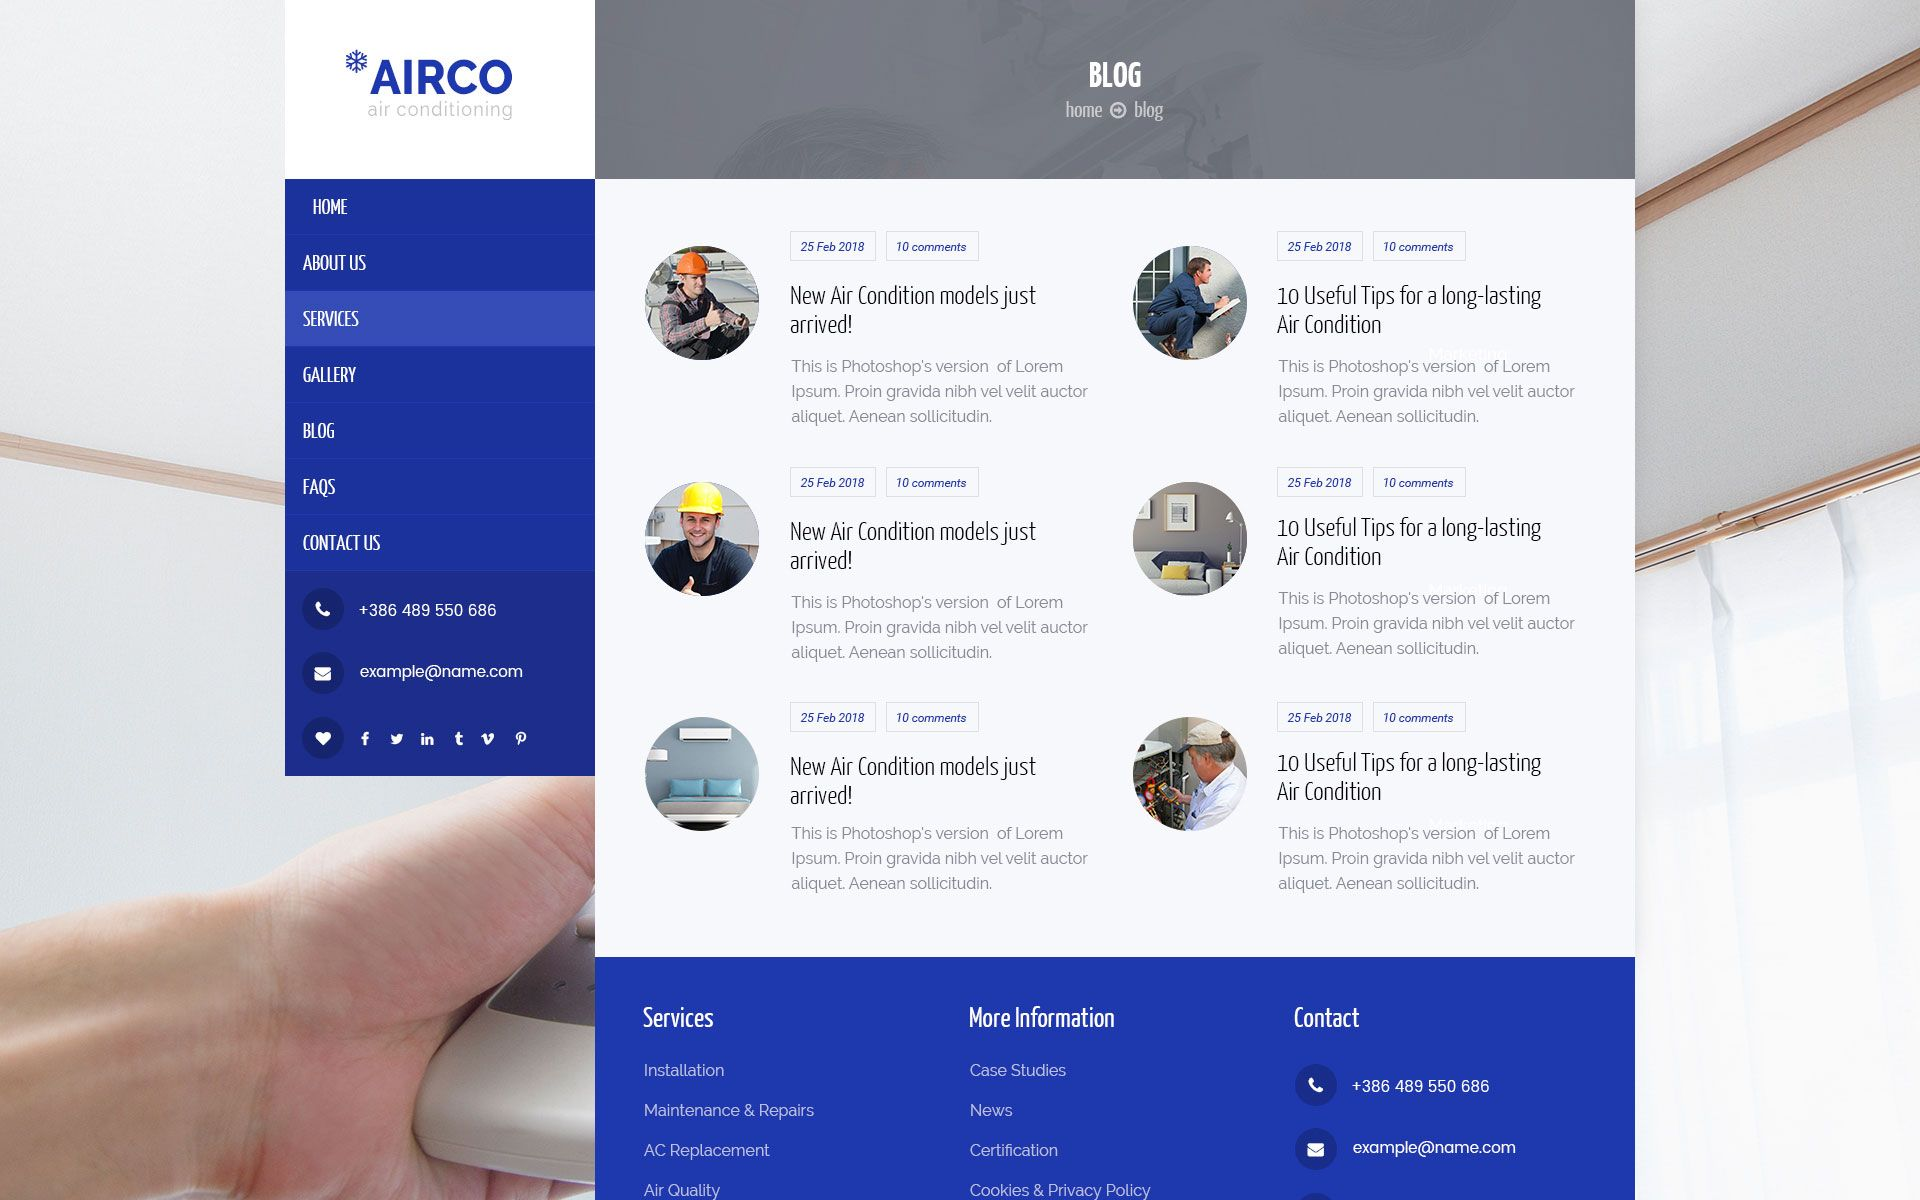 Airco Air Condition Heating And Air Conditioning Heating